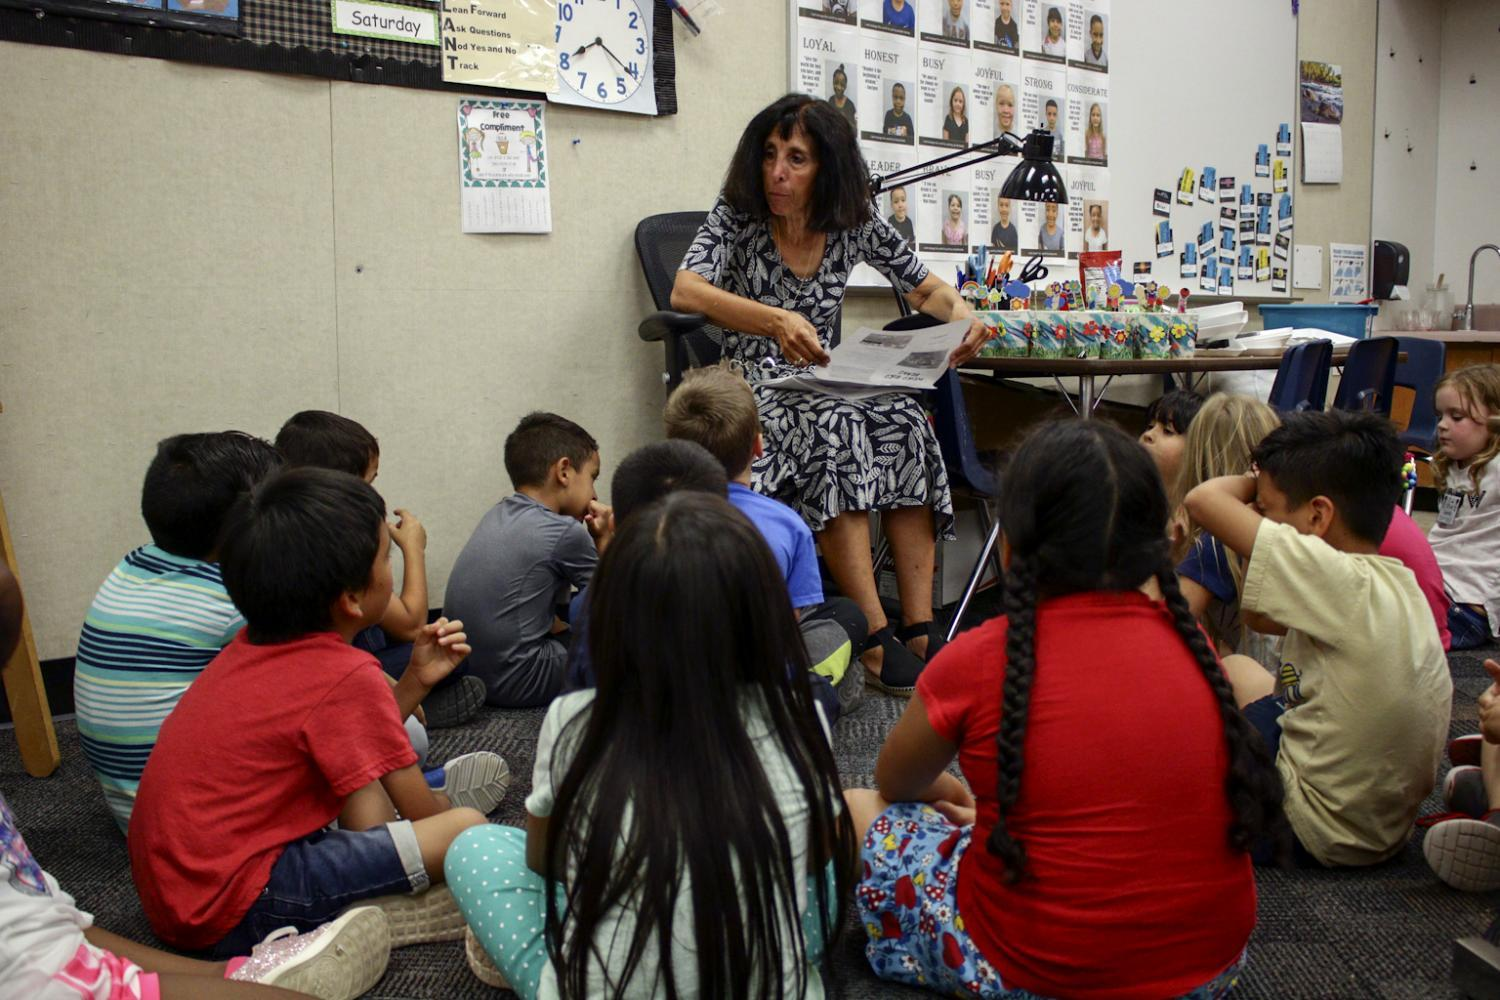 Gina Ucci reads to her class